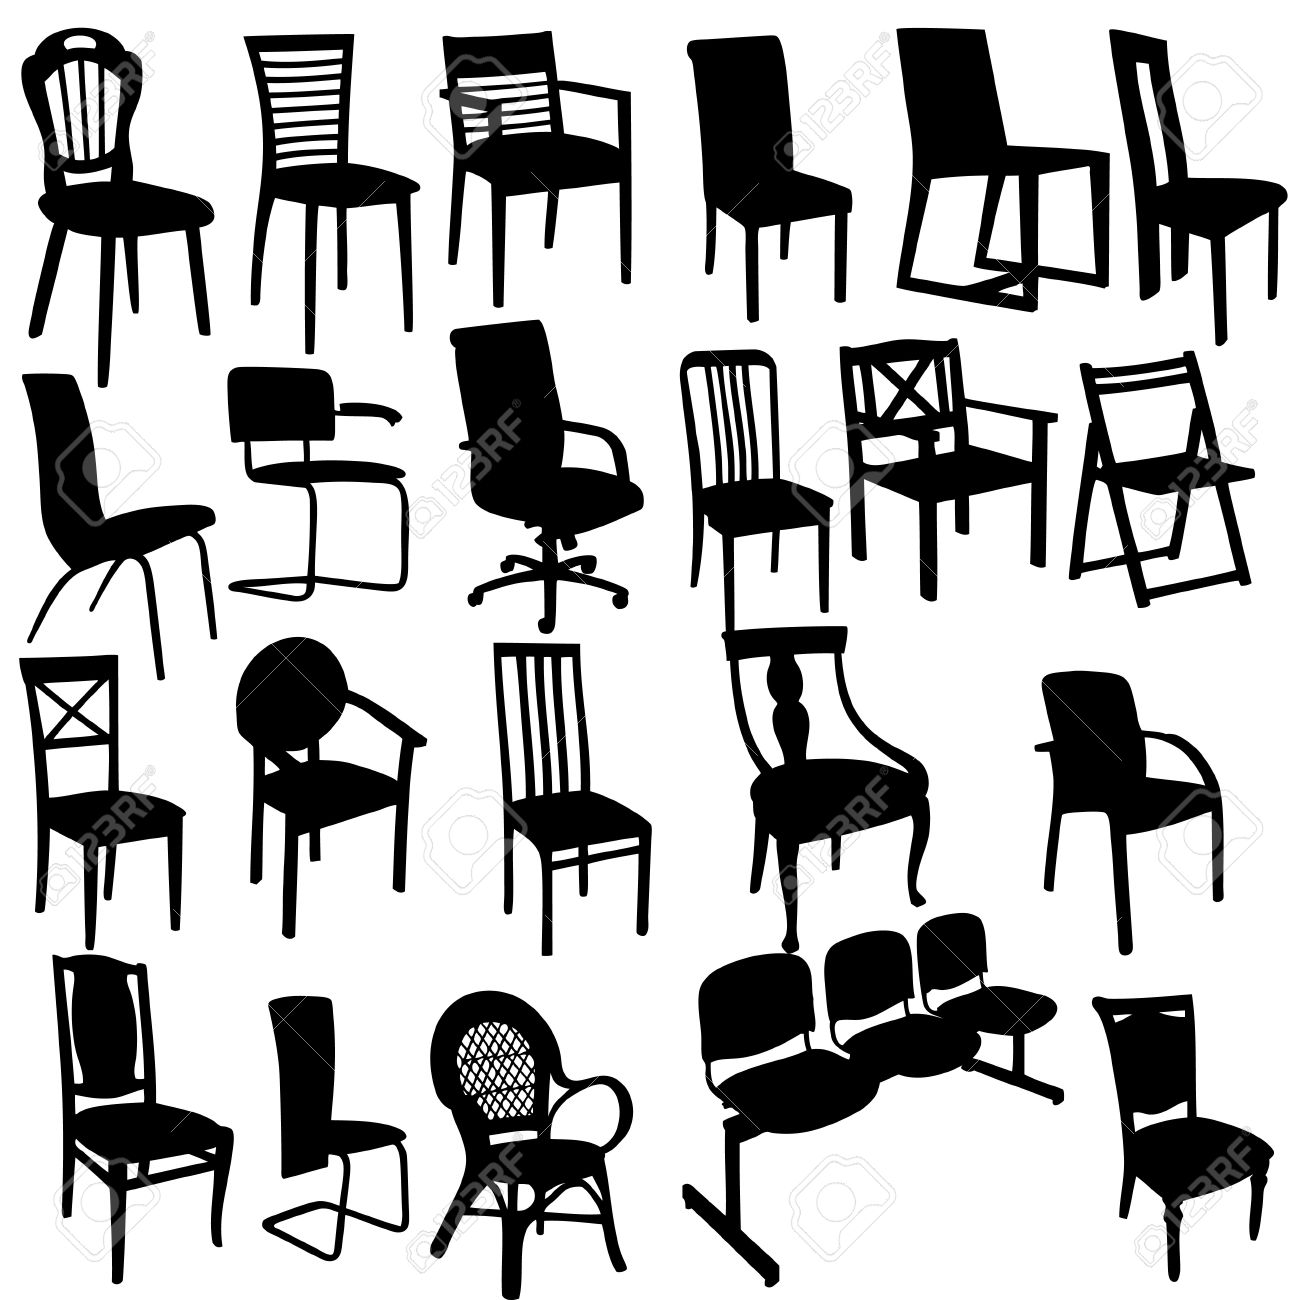 Set of Armchairs Silhouettes Stock Vector - 12303068